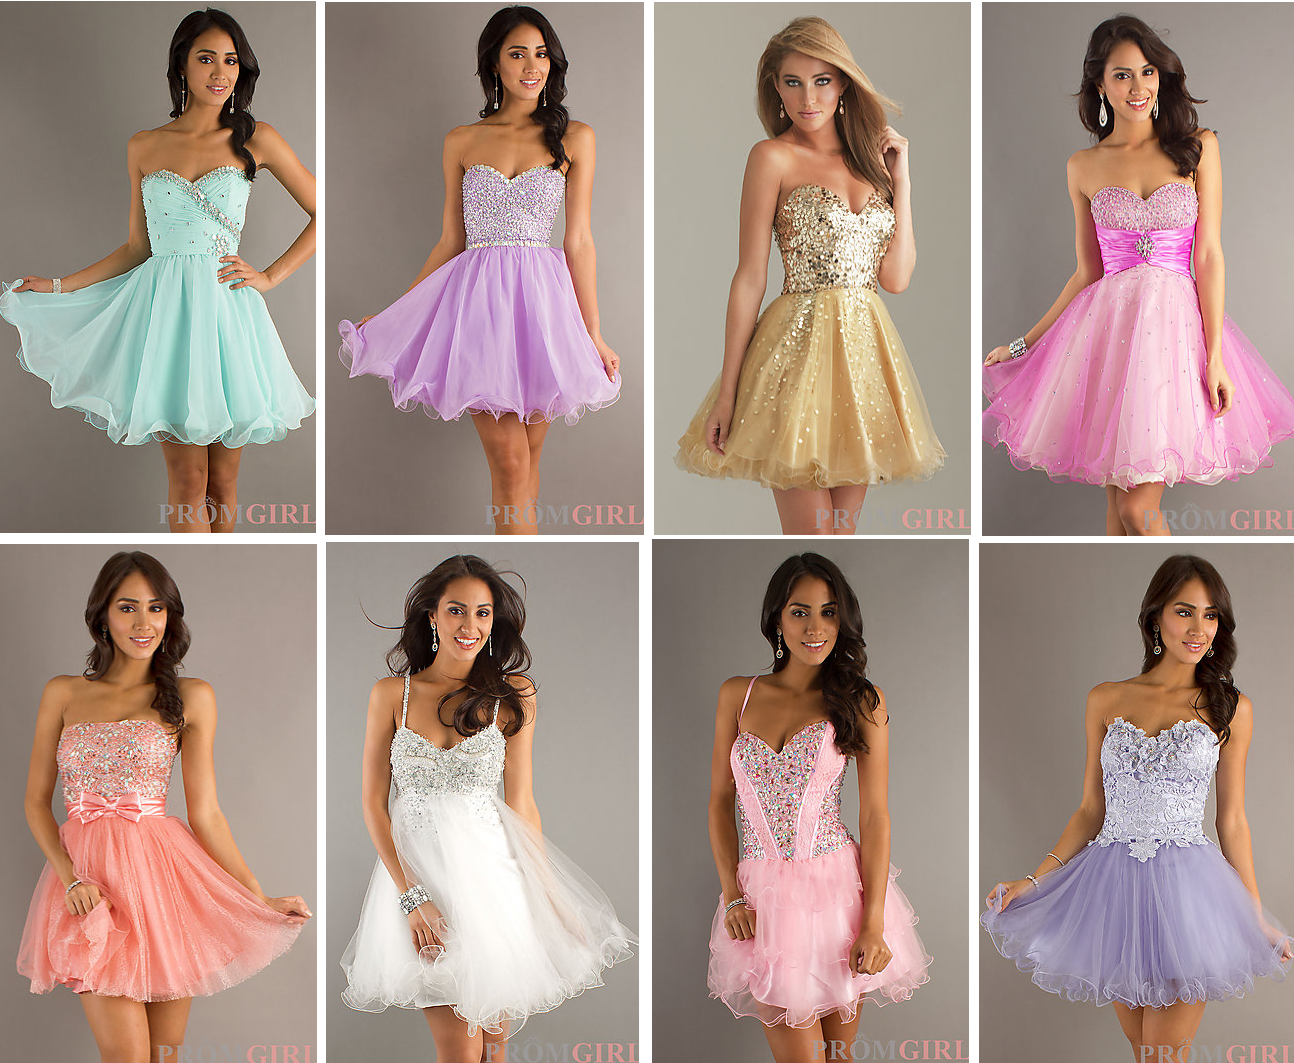 Cute Prom Dresses and Hairstyles